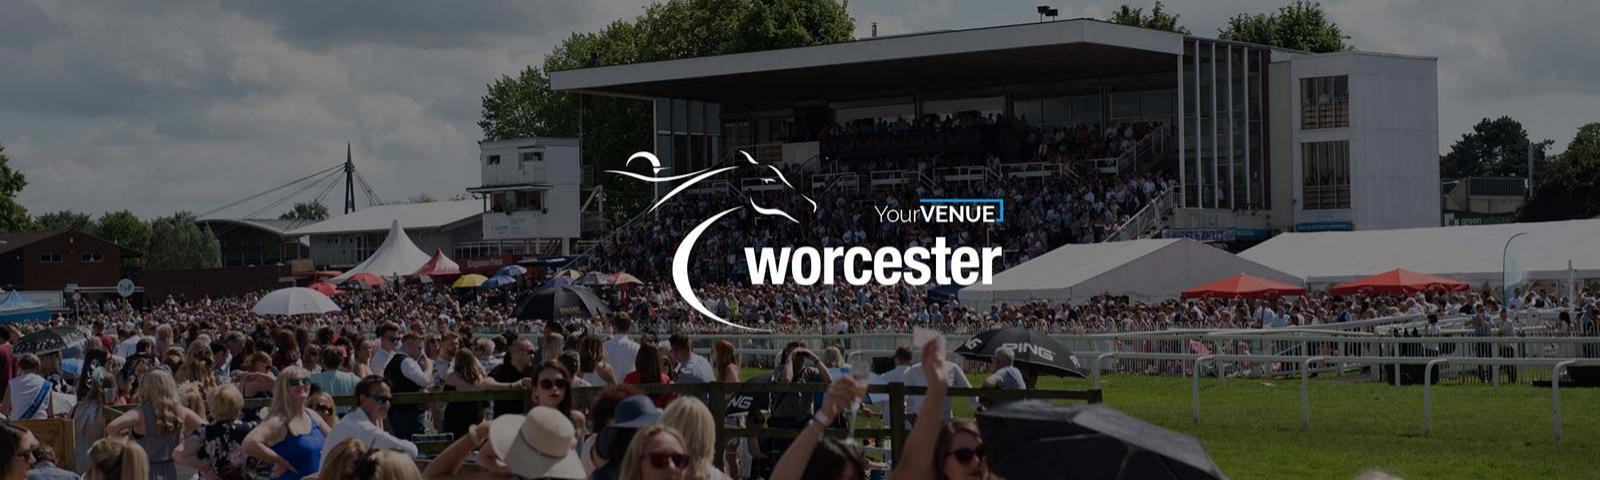 A view of the Grandstand at Worcester Racecourse.